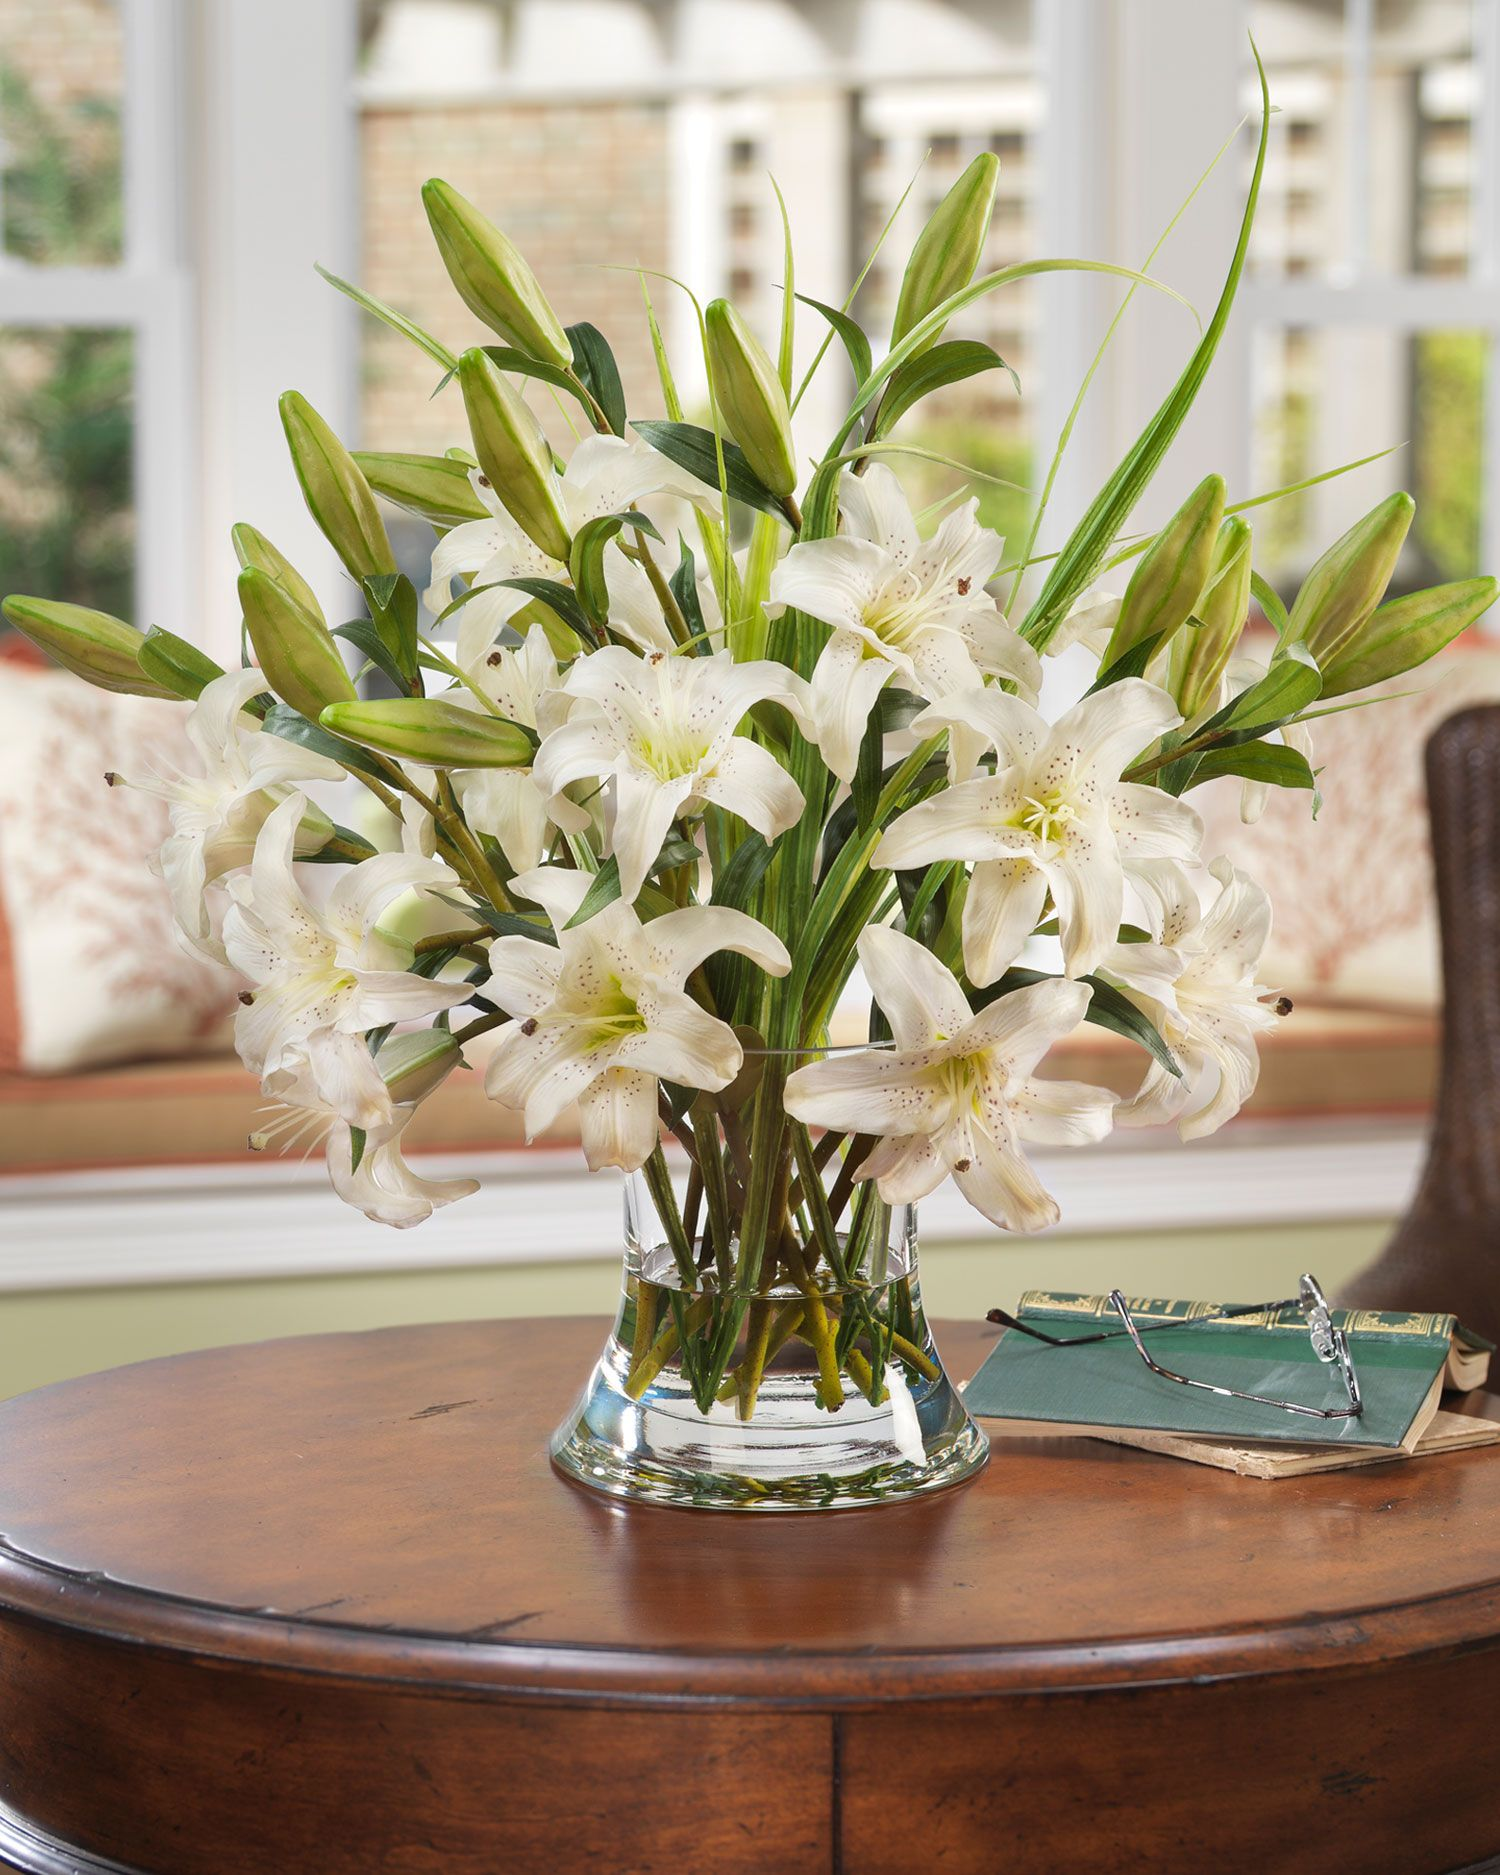 Real touch large white lily centerpiece with blades of